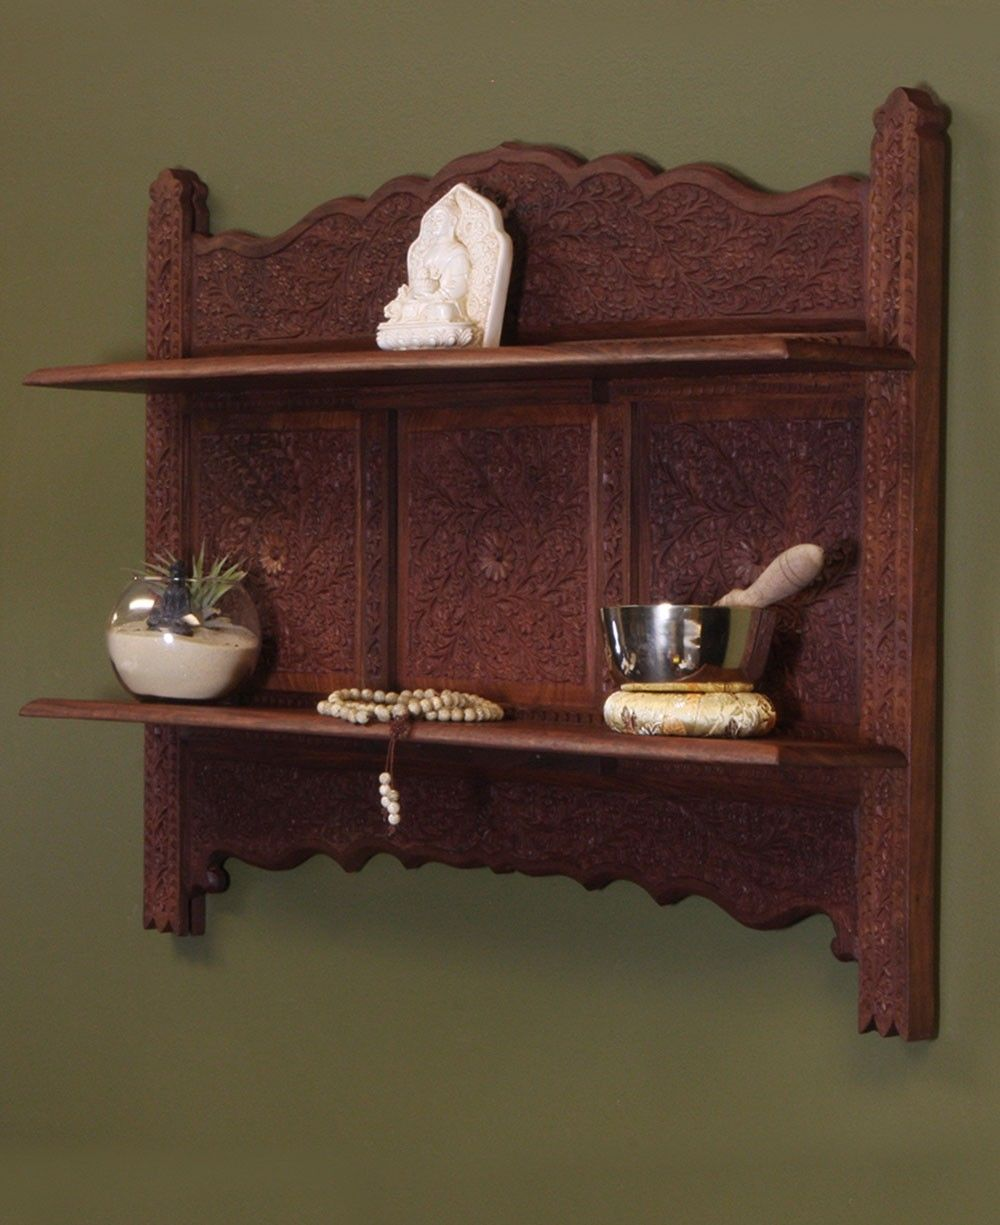 Hand Carved Wood Wall Mount | Indian Home Decor | Decorative Wall Mount